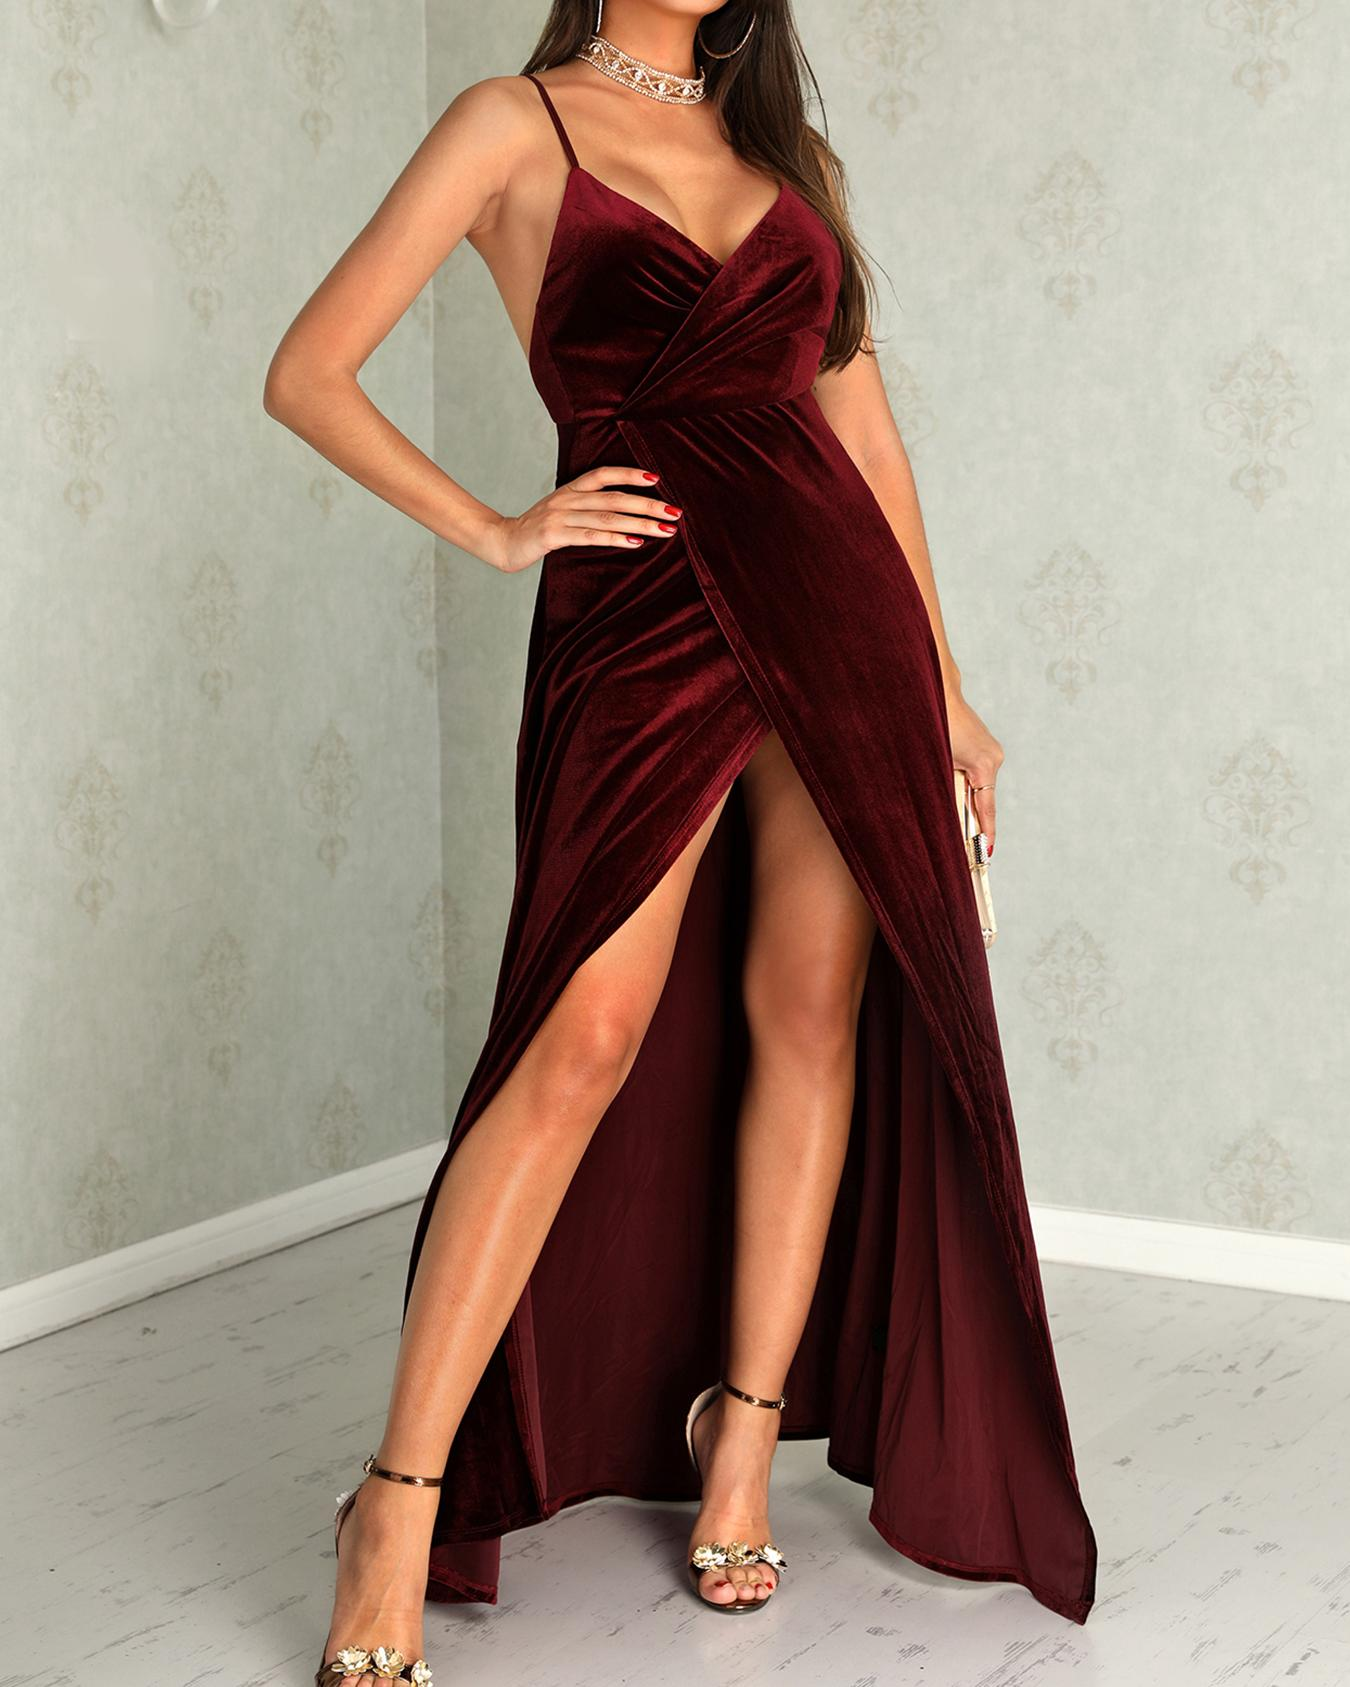 Velvet Wrap Ruched Crisscross Open Back Dress фото